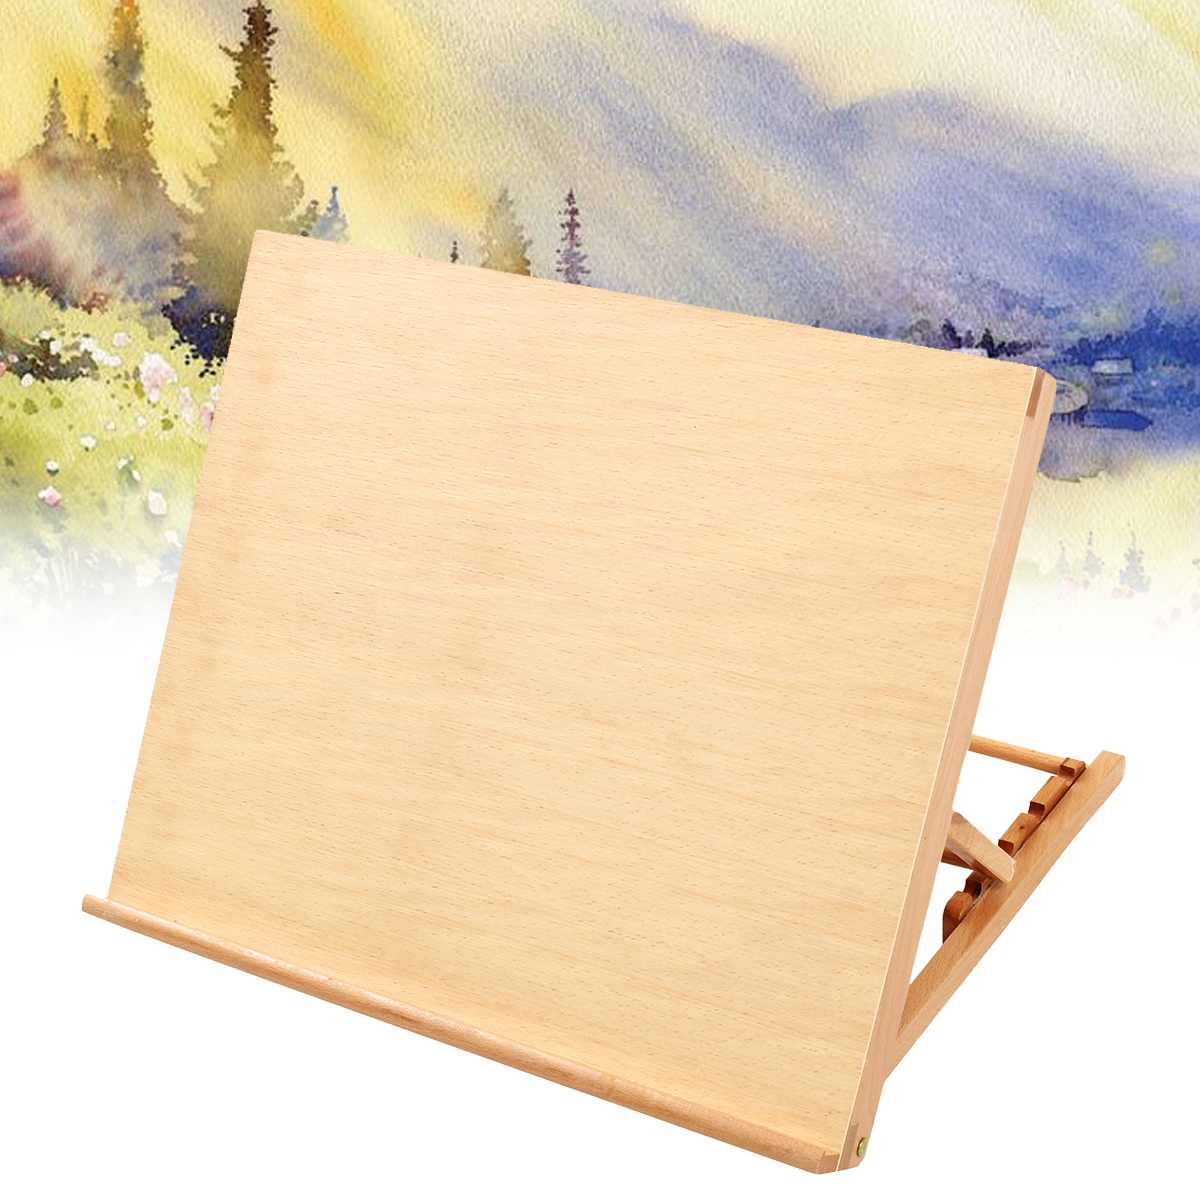 Durable Wooden Easels Display Stand Artist School Painting Rack Wedding Table Card Stand Holder For Party Decoration 49x42x6cm